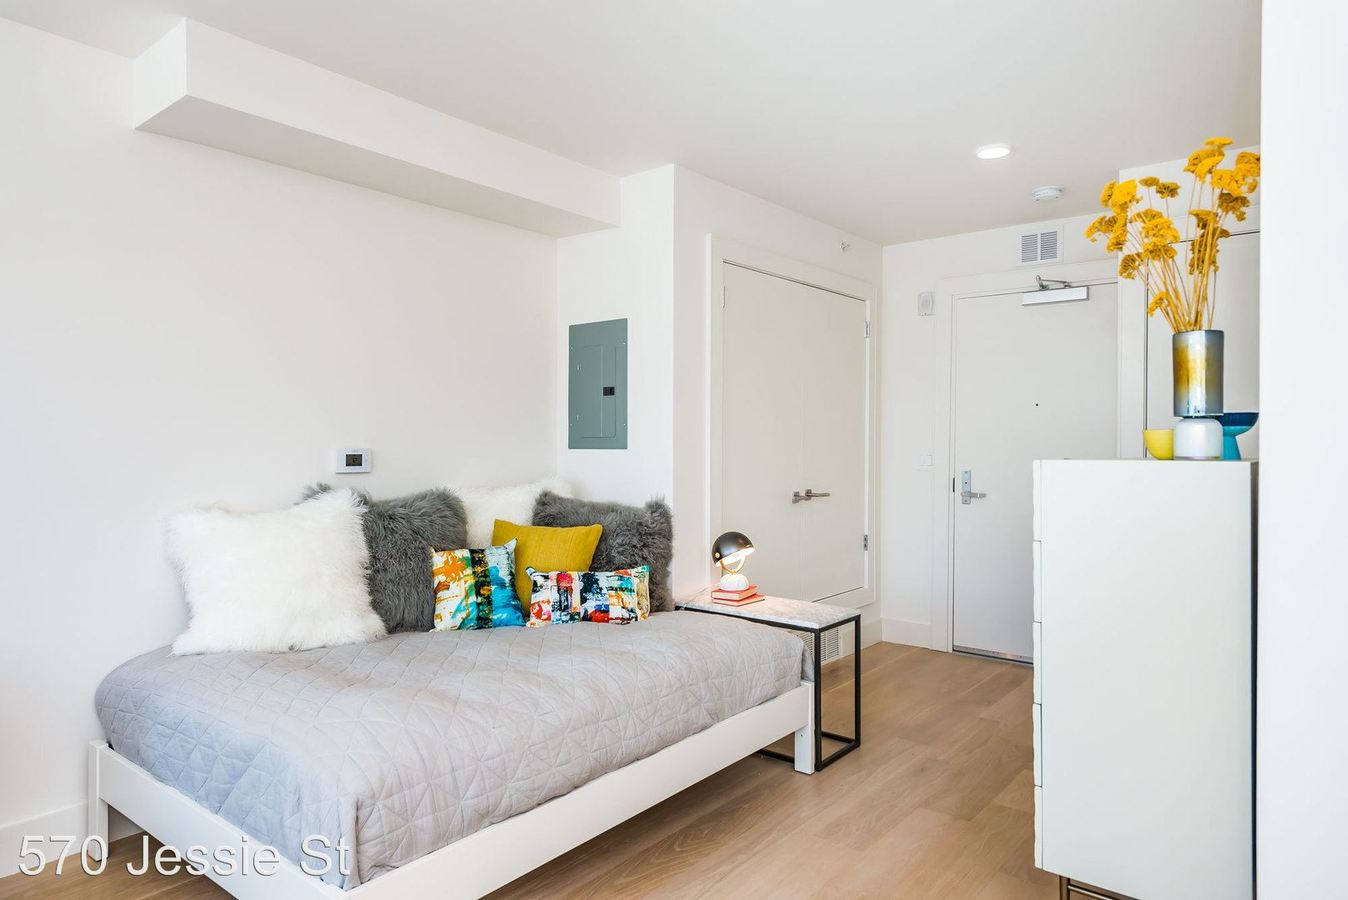 Studio 1 Bathroom Apartment for rent at 570 Jessie St in San Francisco, CA